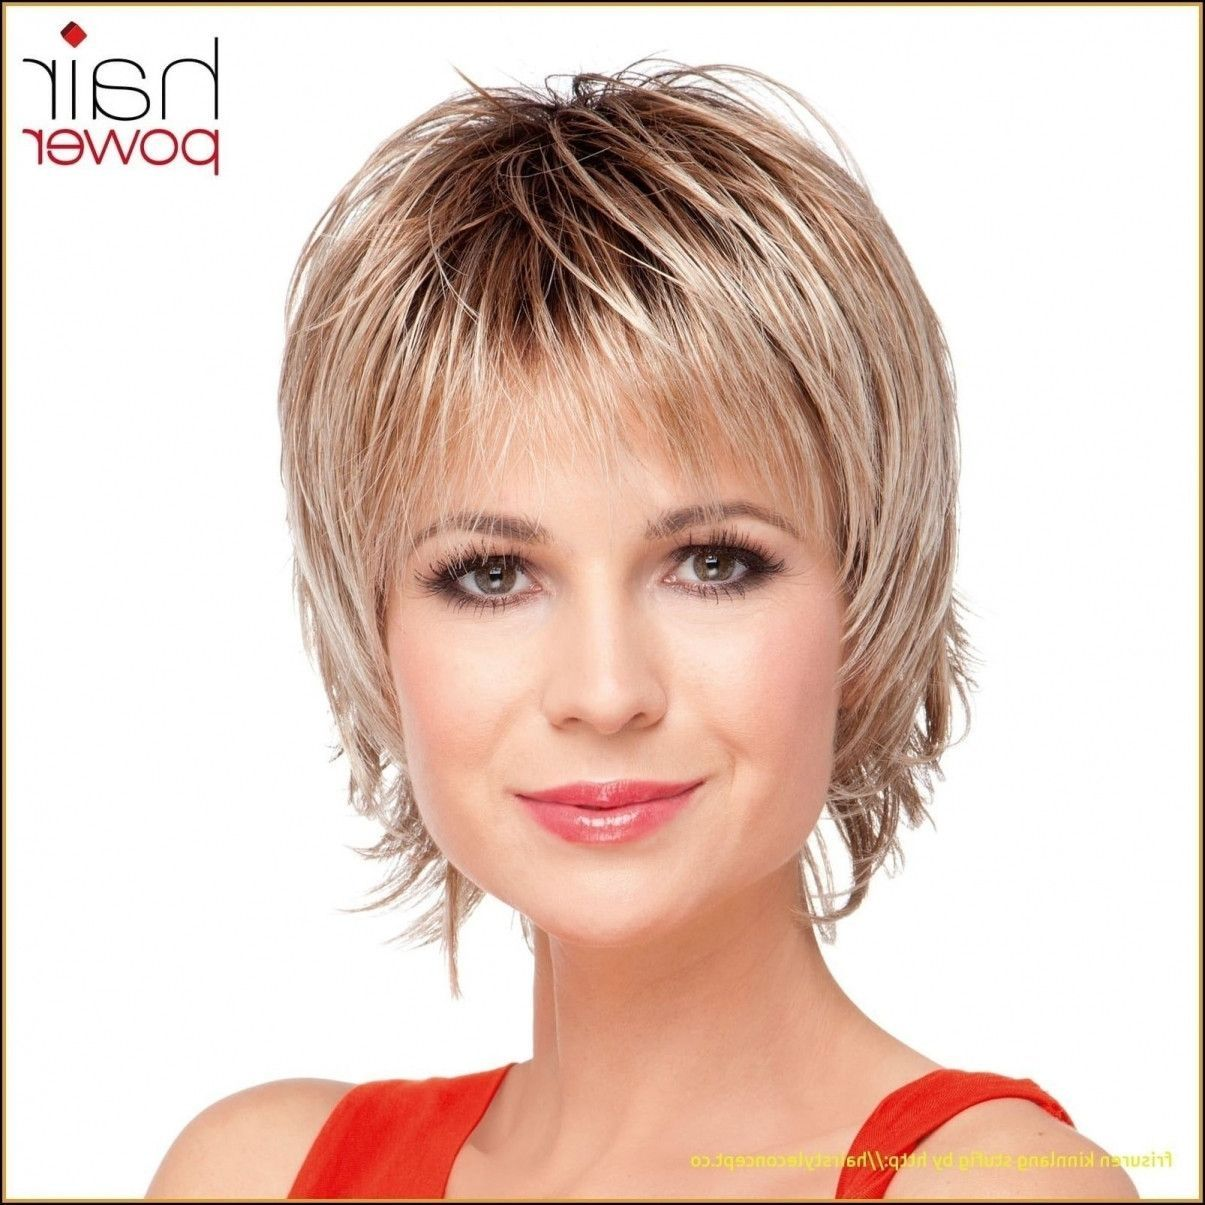 Kurz Frisuren 2019 Elegant Bob Frisuren Kinnlang 2019 Frisuren Bob 2019 Bob Bobfrisurenki In 2020 Hair Styles Womens Hairstyles Medium Length Hair Styles